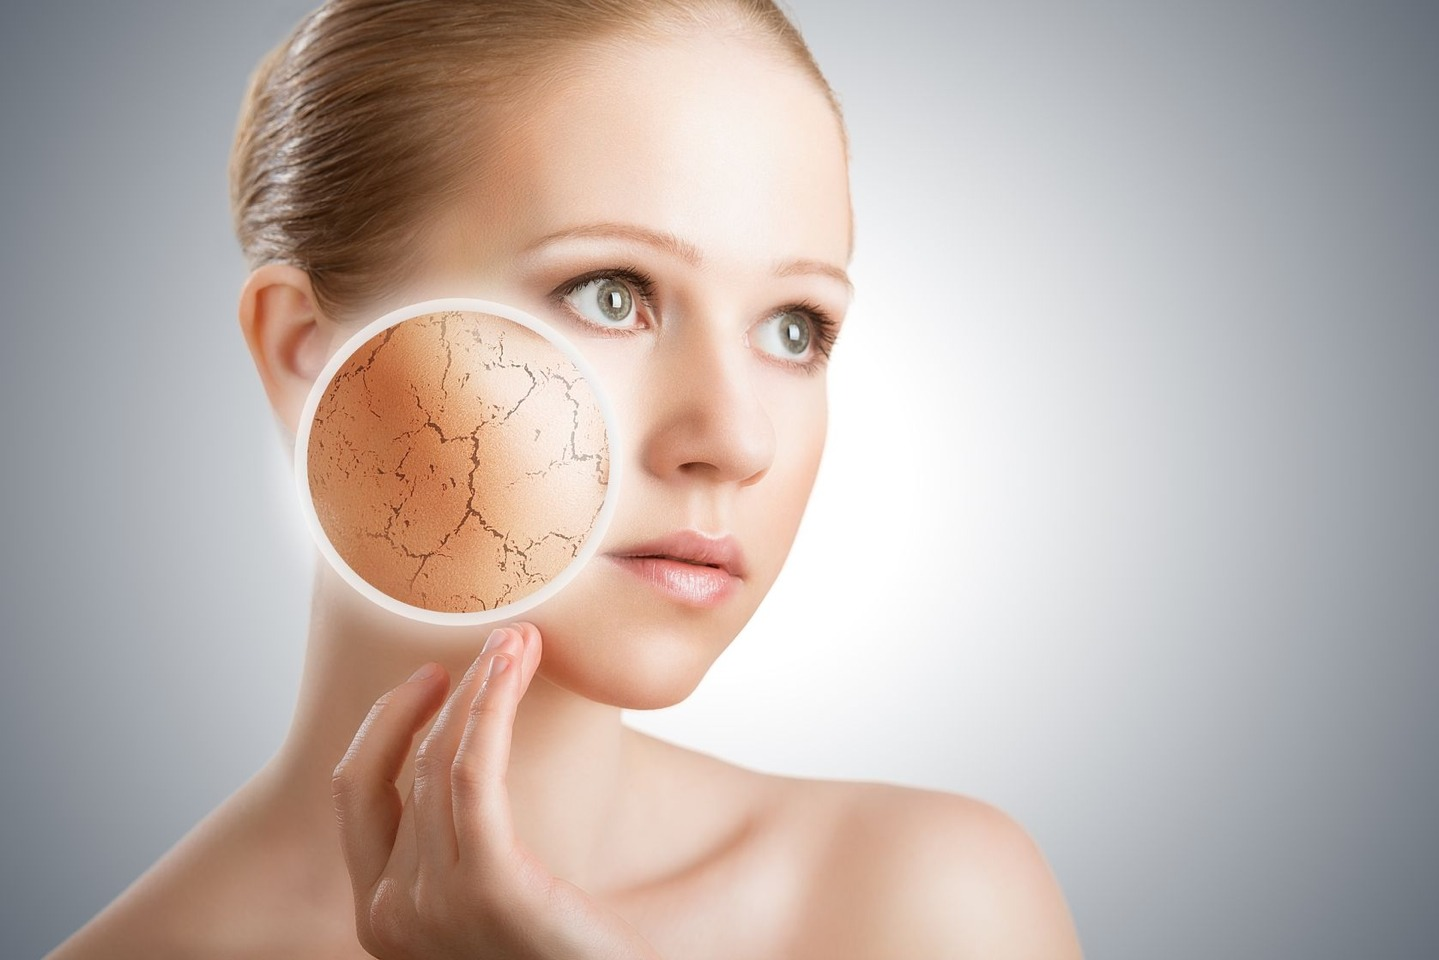 3. You must pay attention to your skin's specific needs. People with dry skin may need to moisturize more often than people with regular or oily skin. However, that is not to say that people with oily skin should not moisturize. Moisturizers do much more than simply help hydrate dry skin